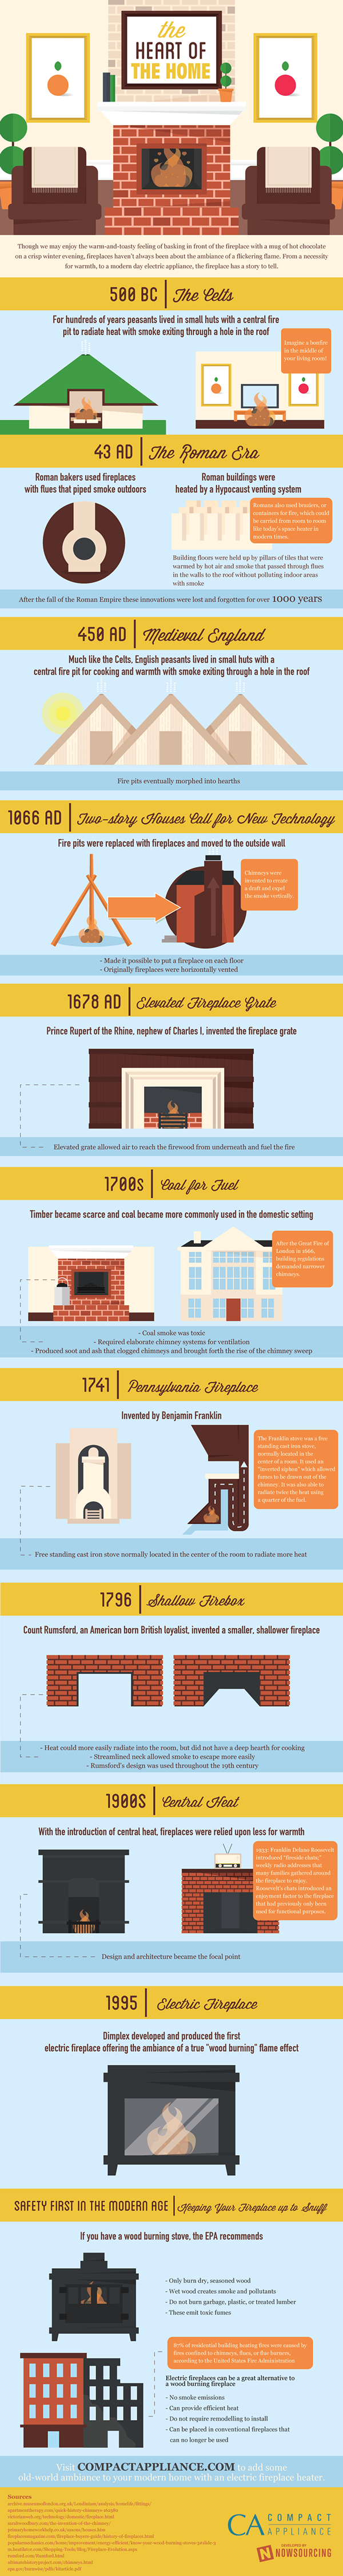 The History Of Fireplaces On Behance Infographic Gardening Infographic Infographic Marketing